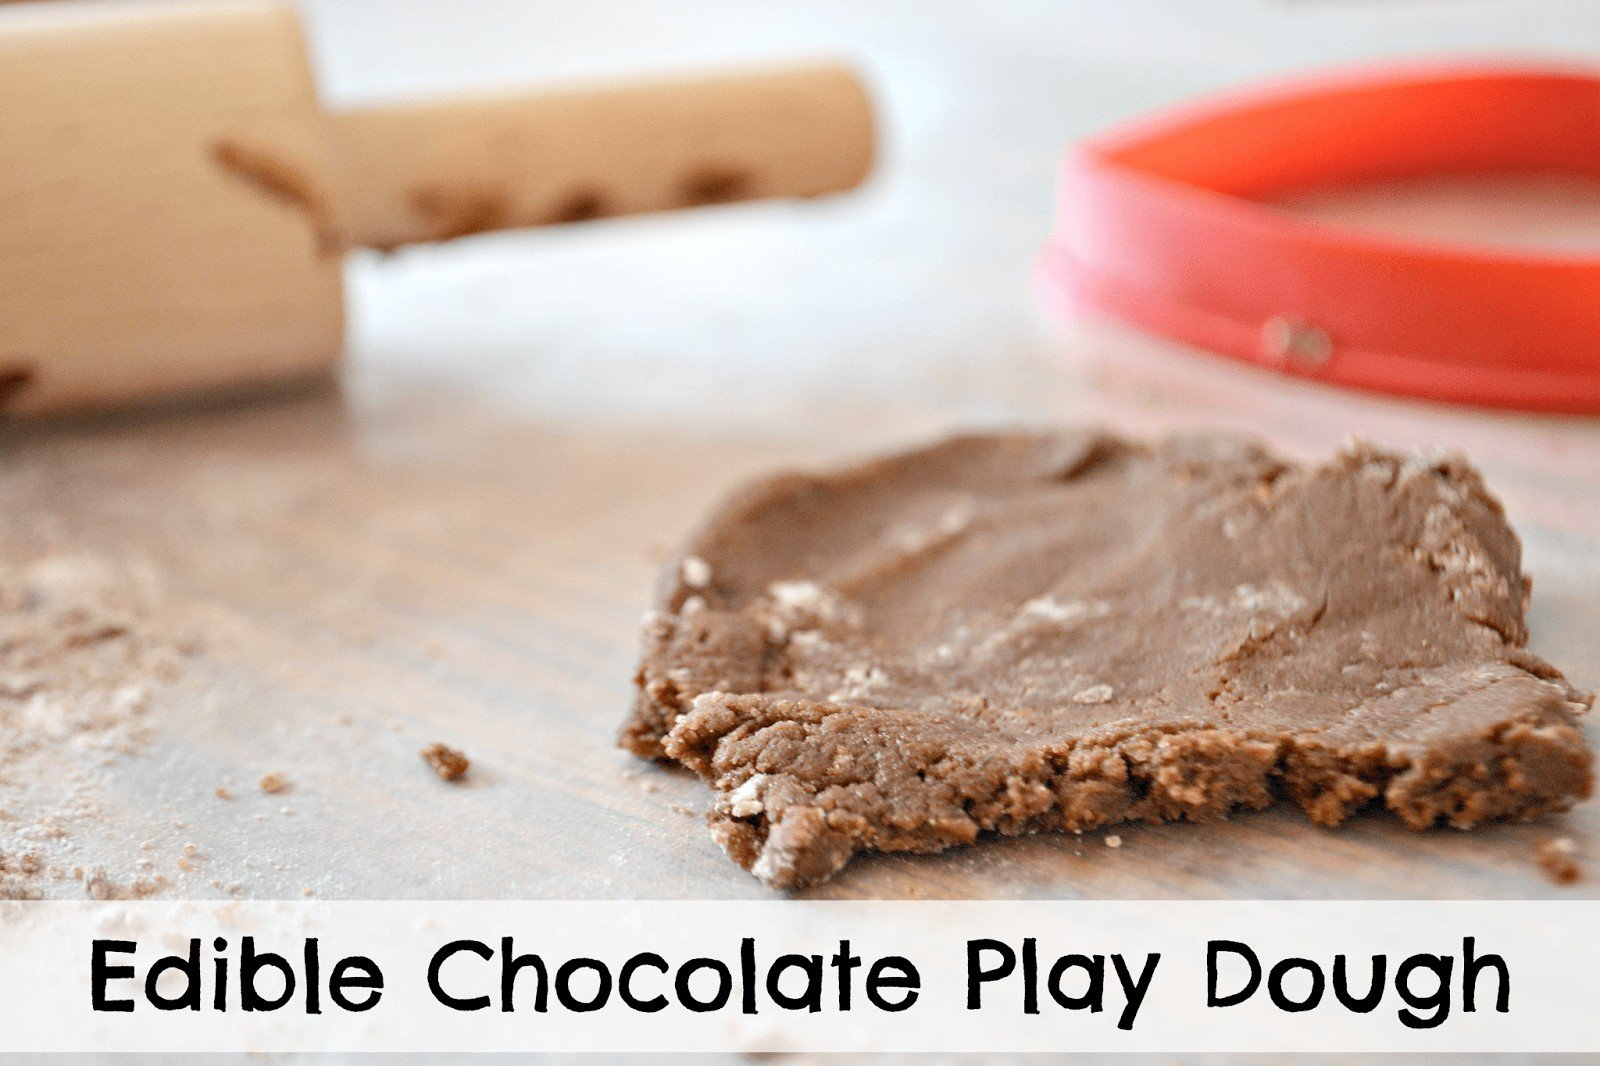 edible chocolate play dough